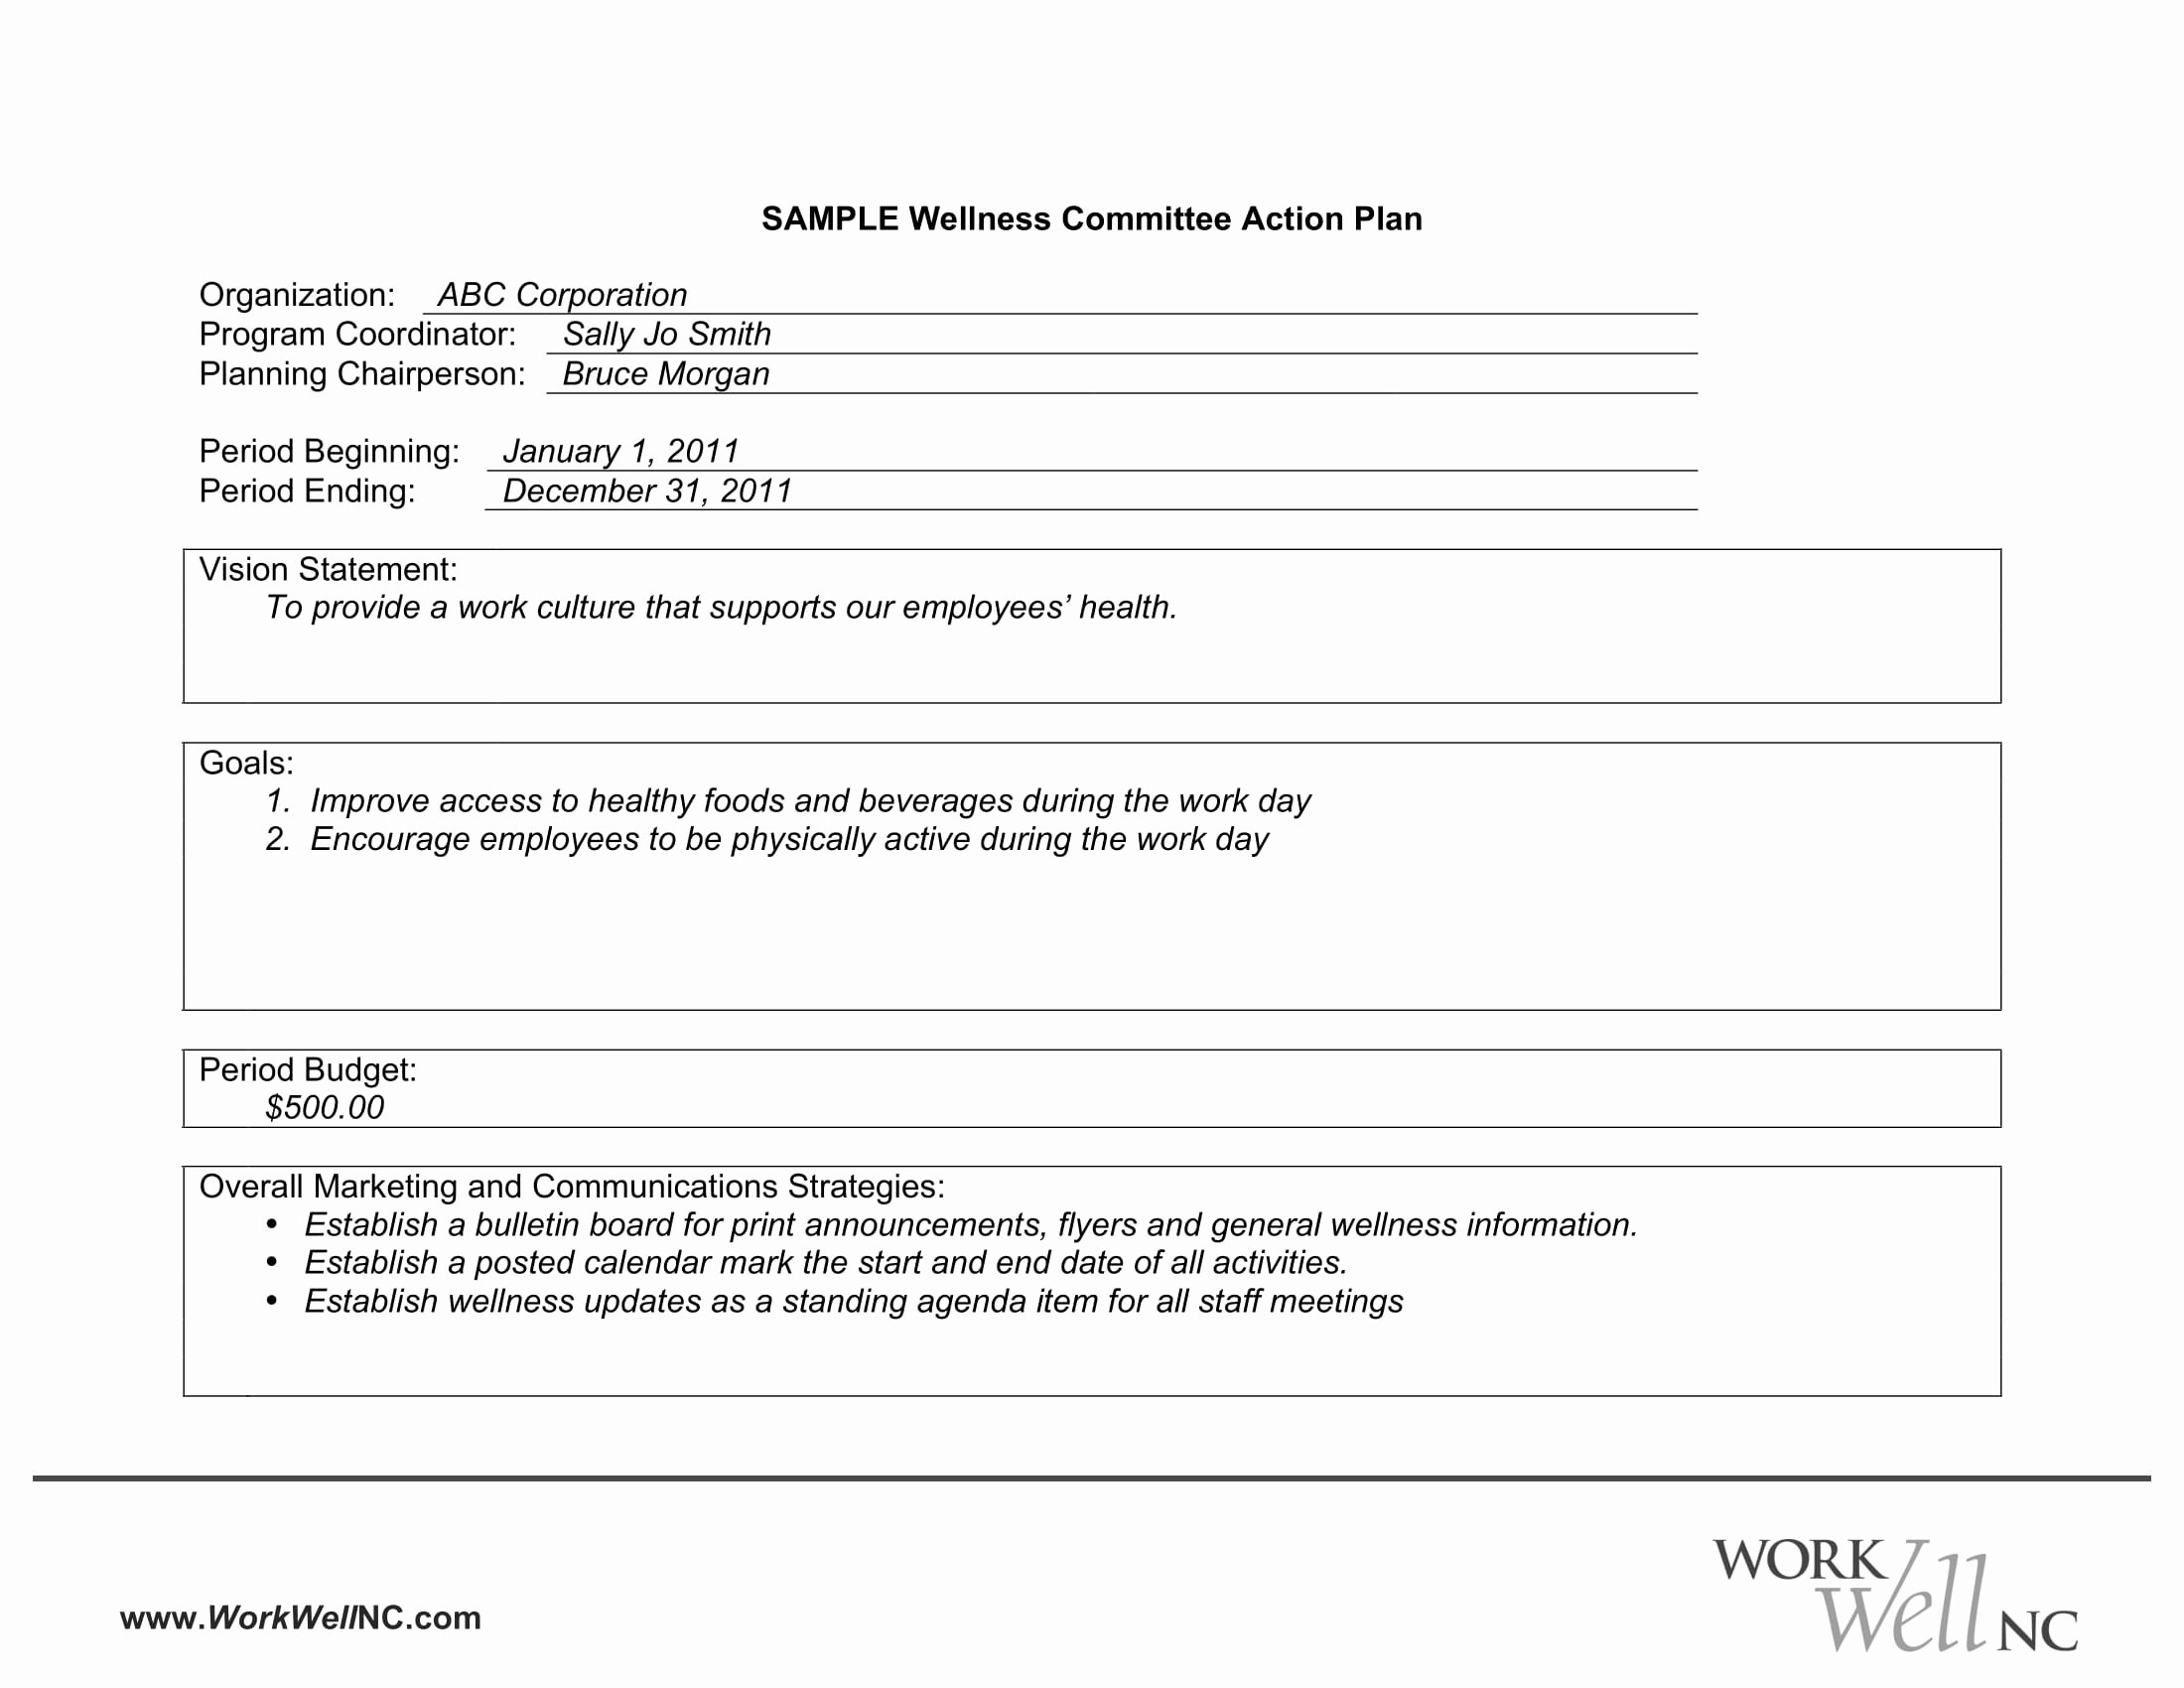 Strategic Action Plan Template Best Of 13 Printable Strategic Action Plan Examples Pdf Word